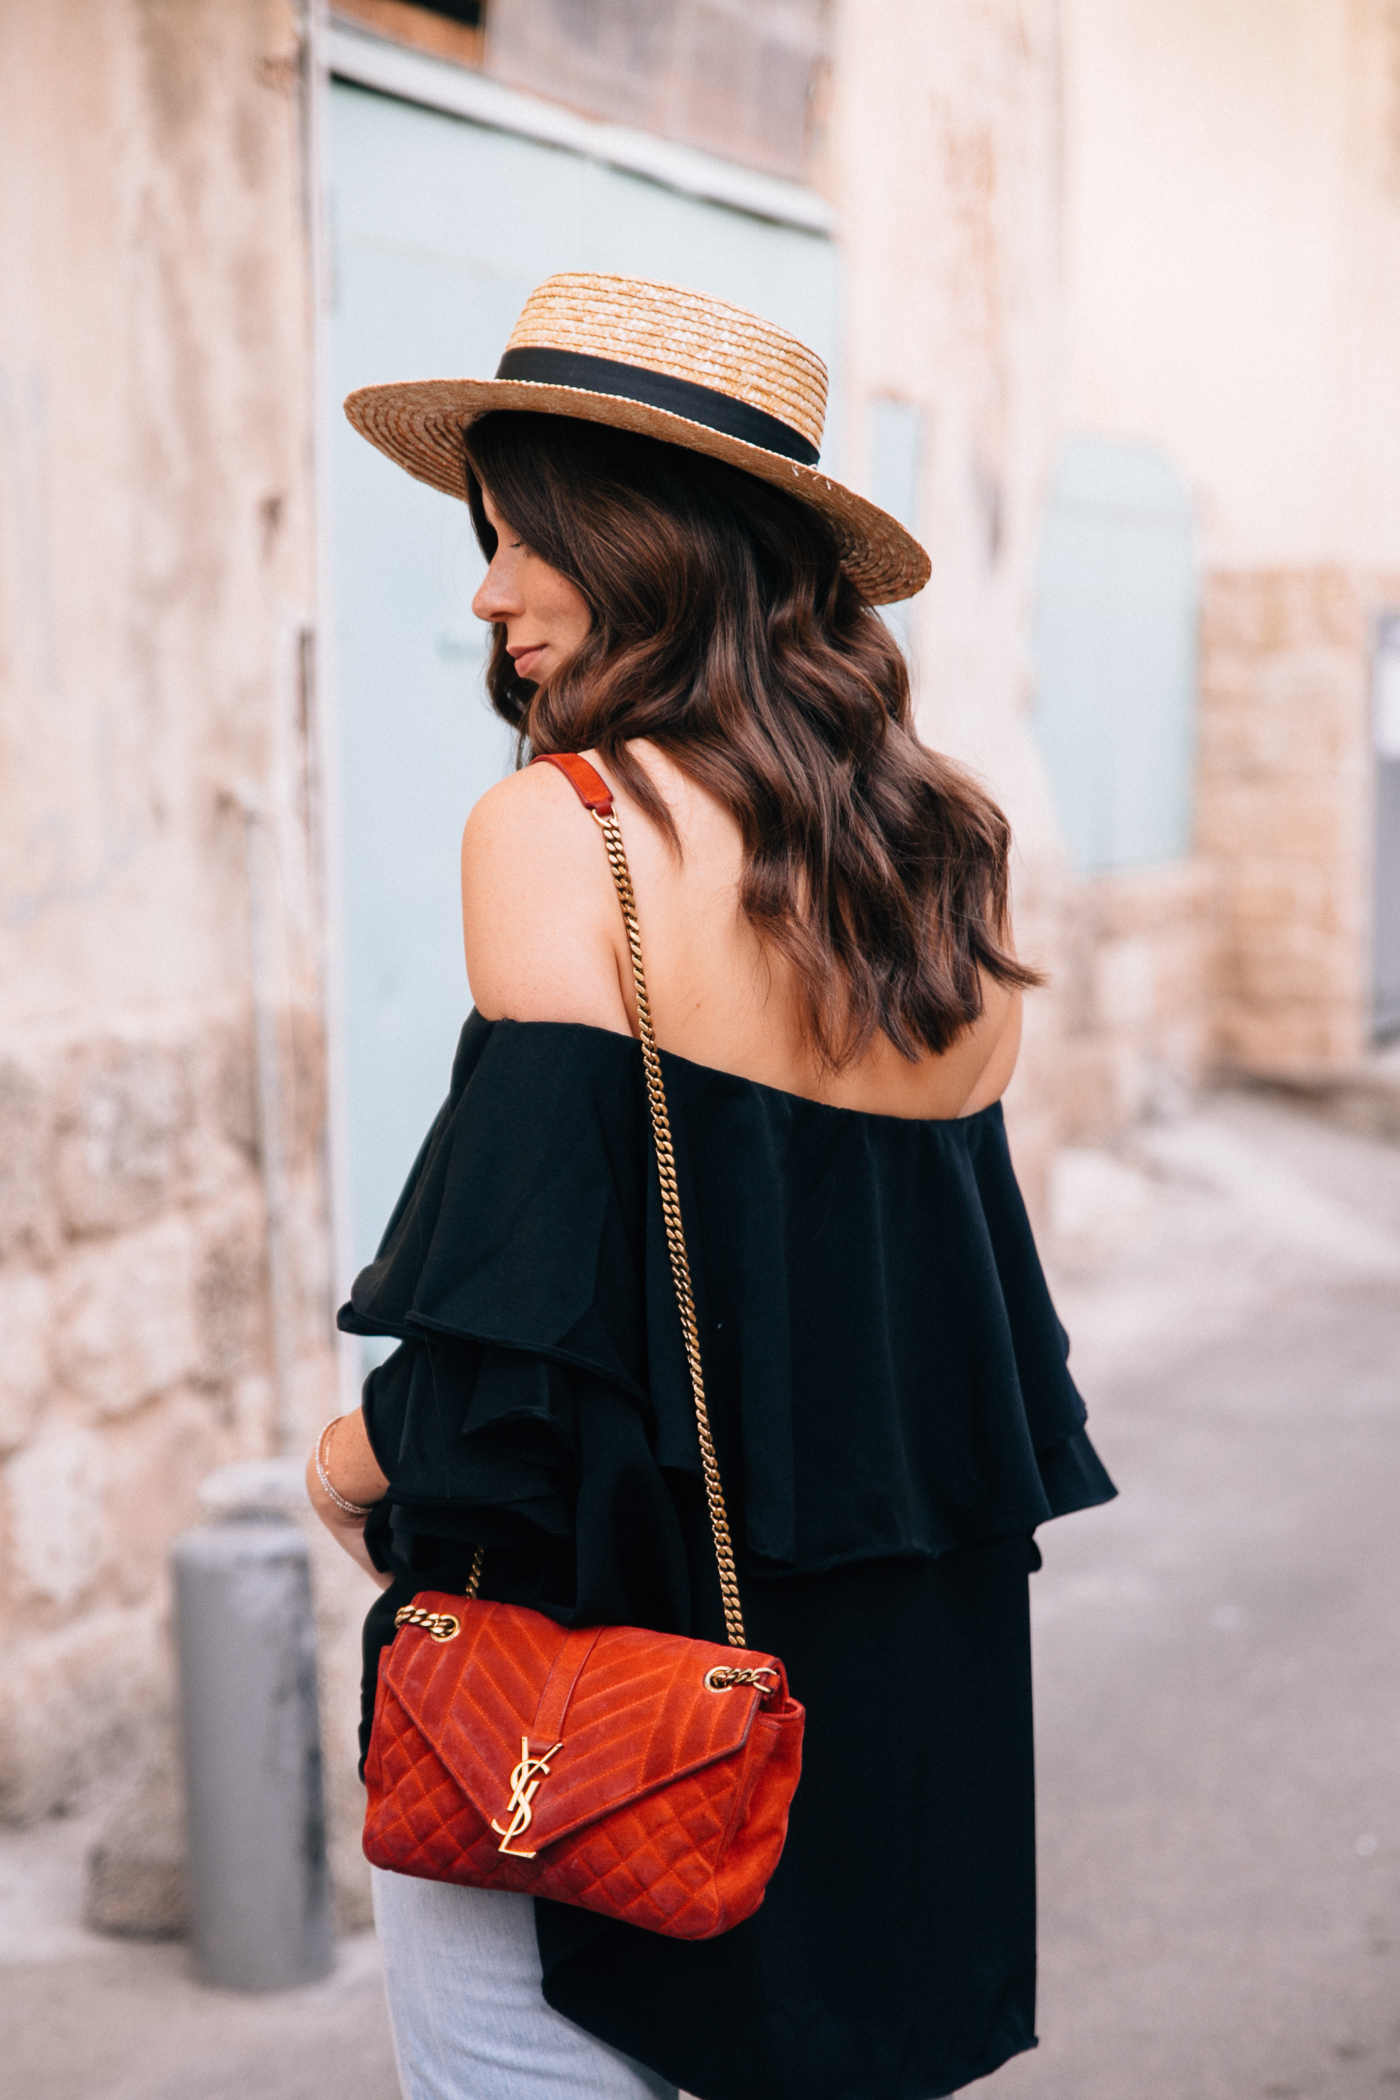 OUTFIT: MLM Label Off-Shoulder Top (black) | Bikinis & Passports